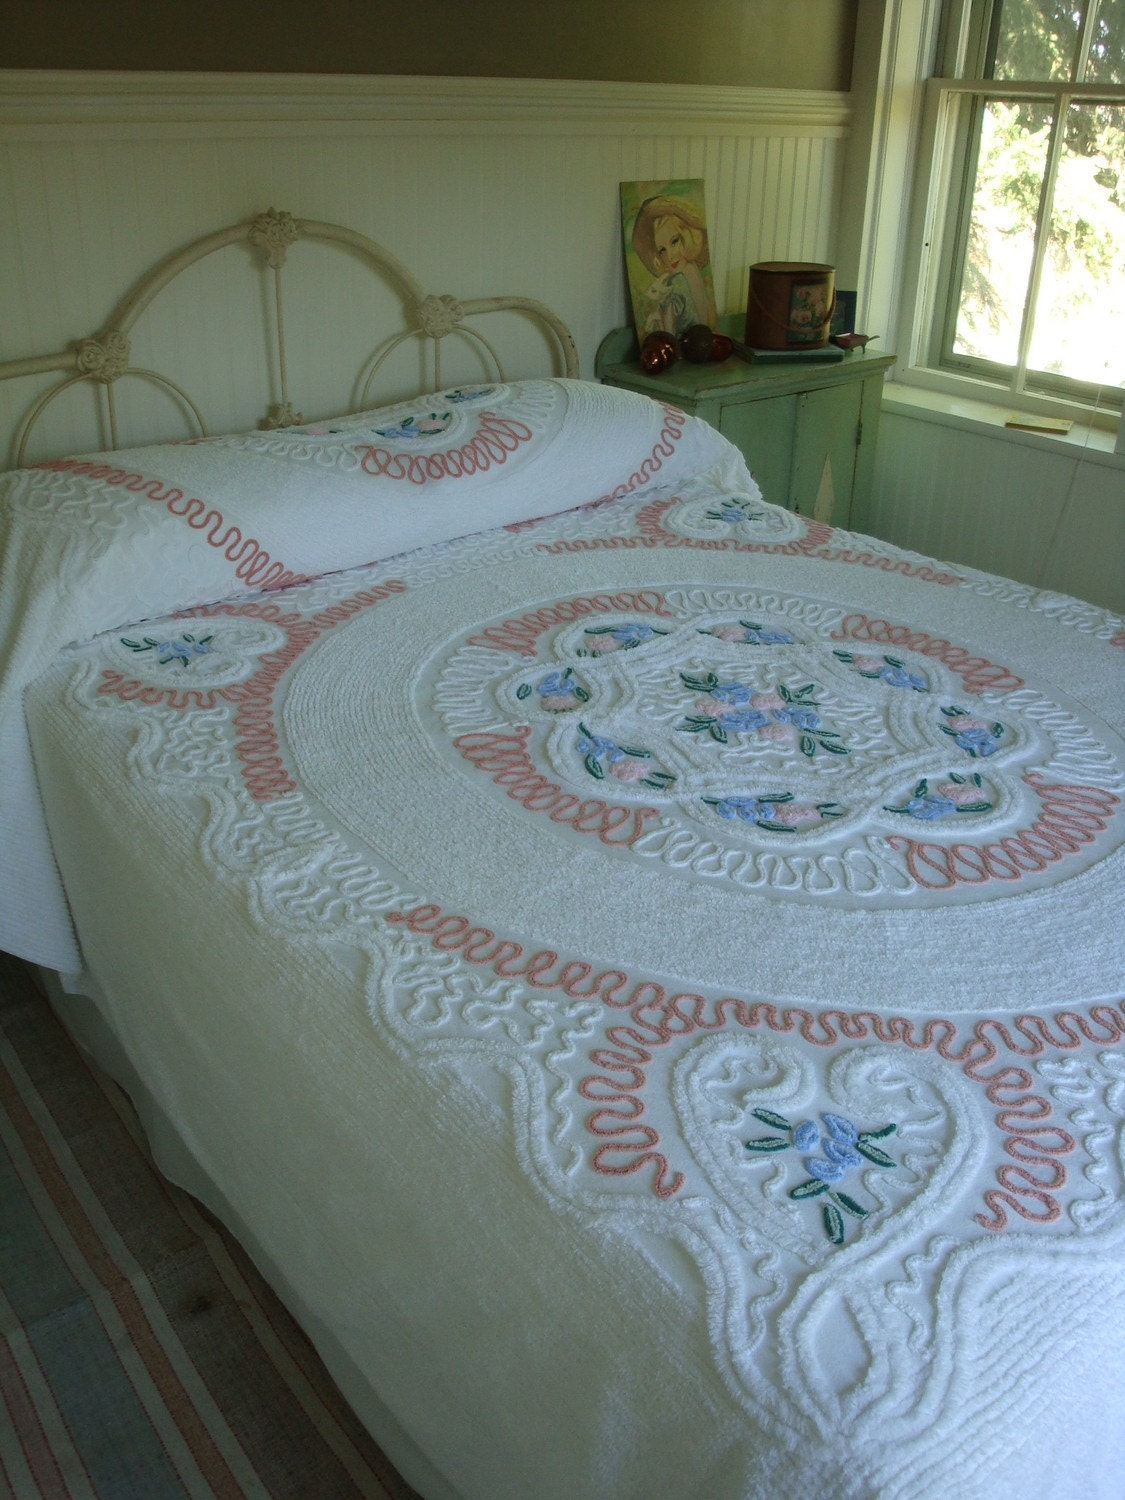 Vintage Needletuft Chenille Bedspread Hearts and Flowers Its AWhite Sweet Pea